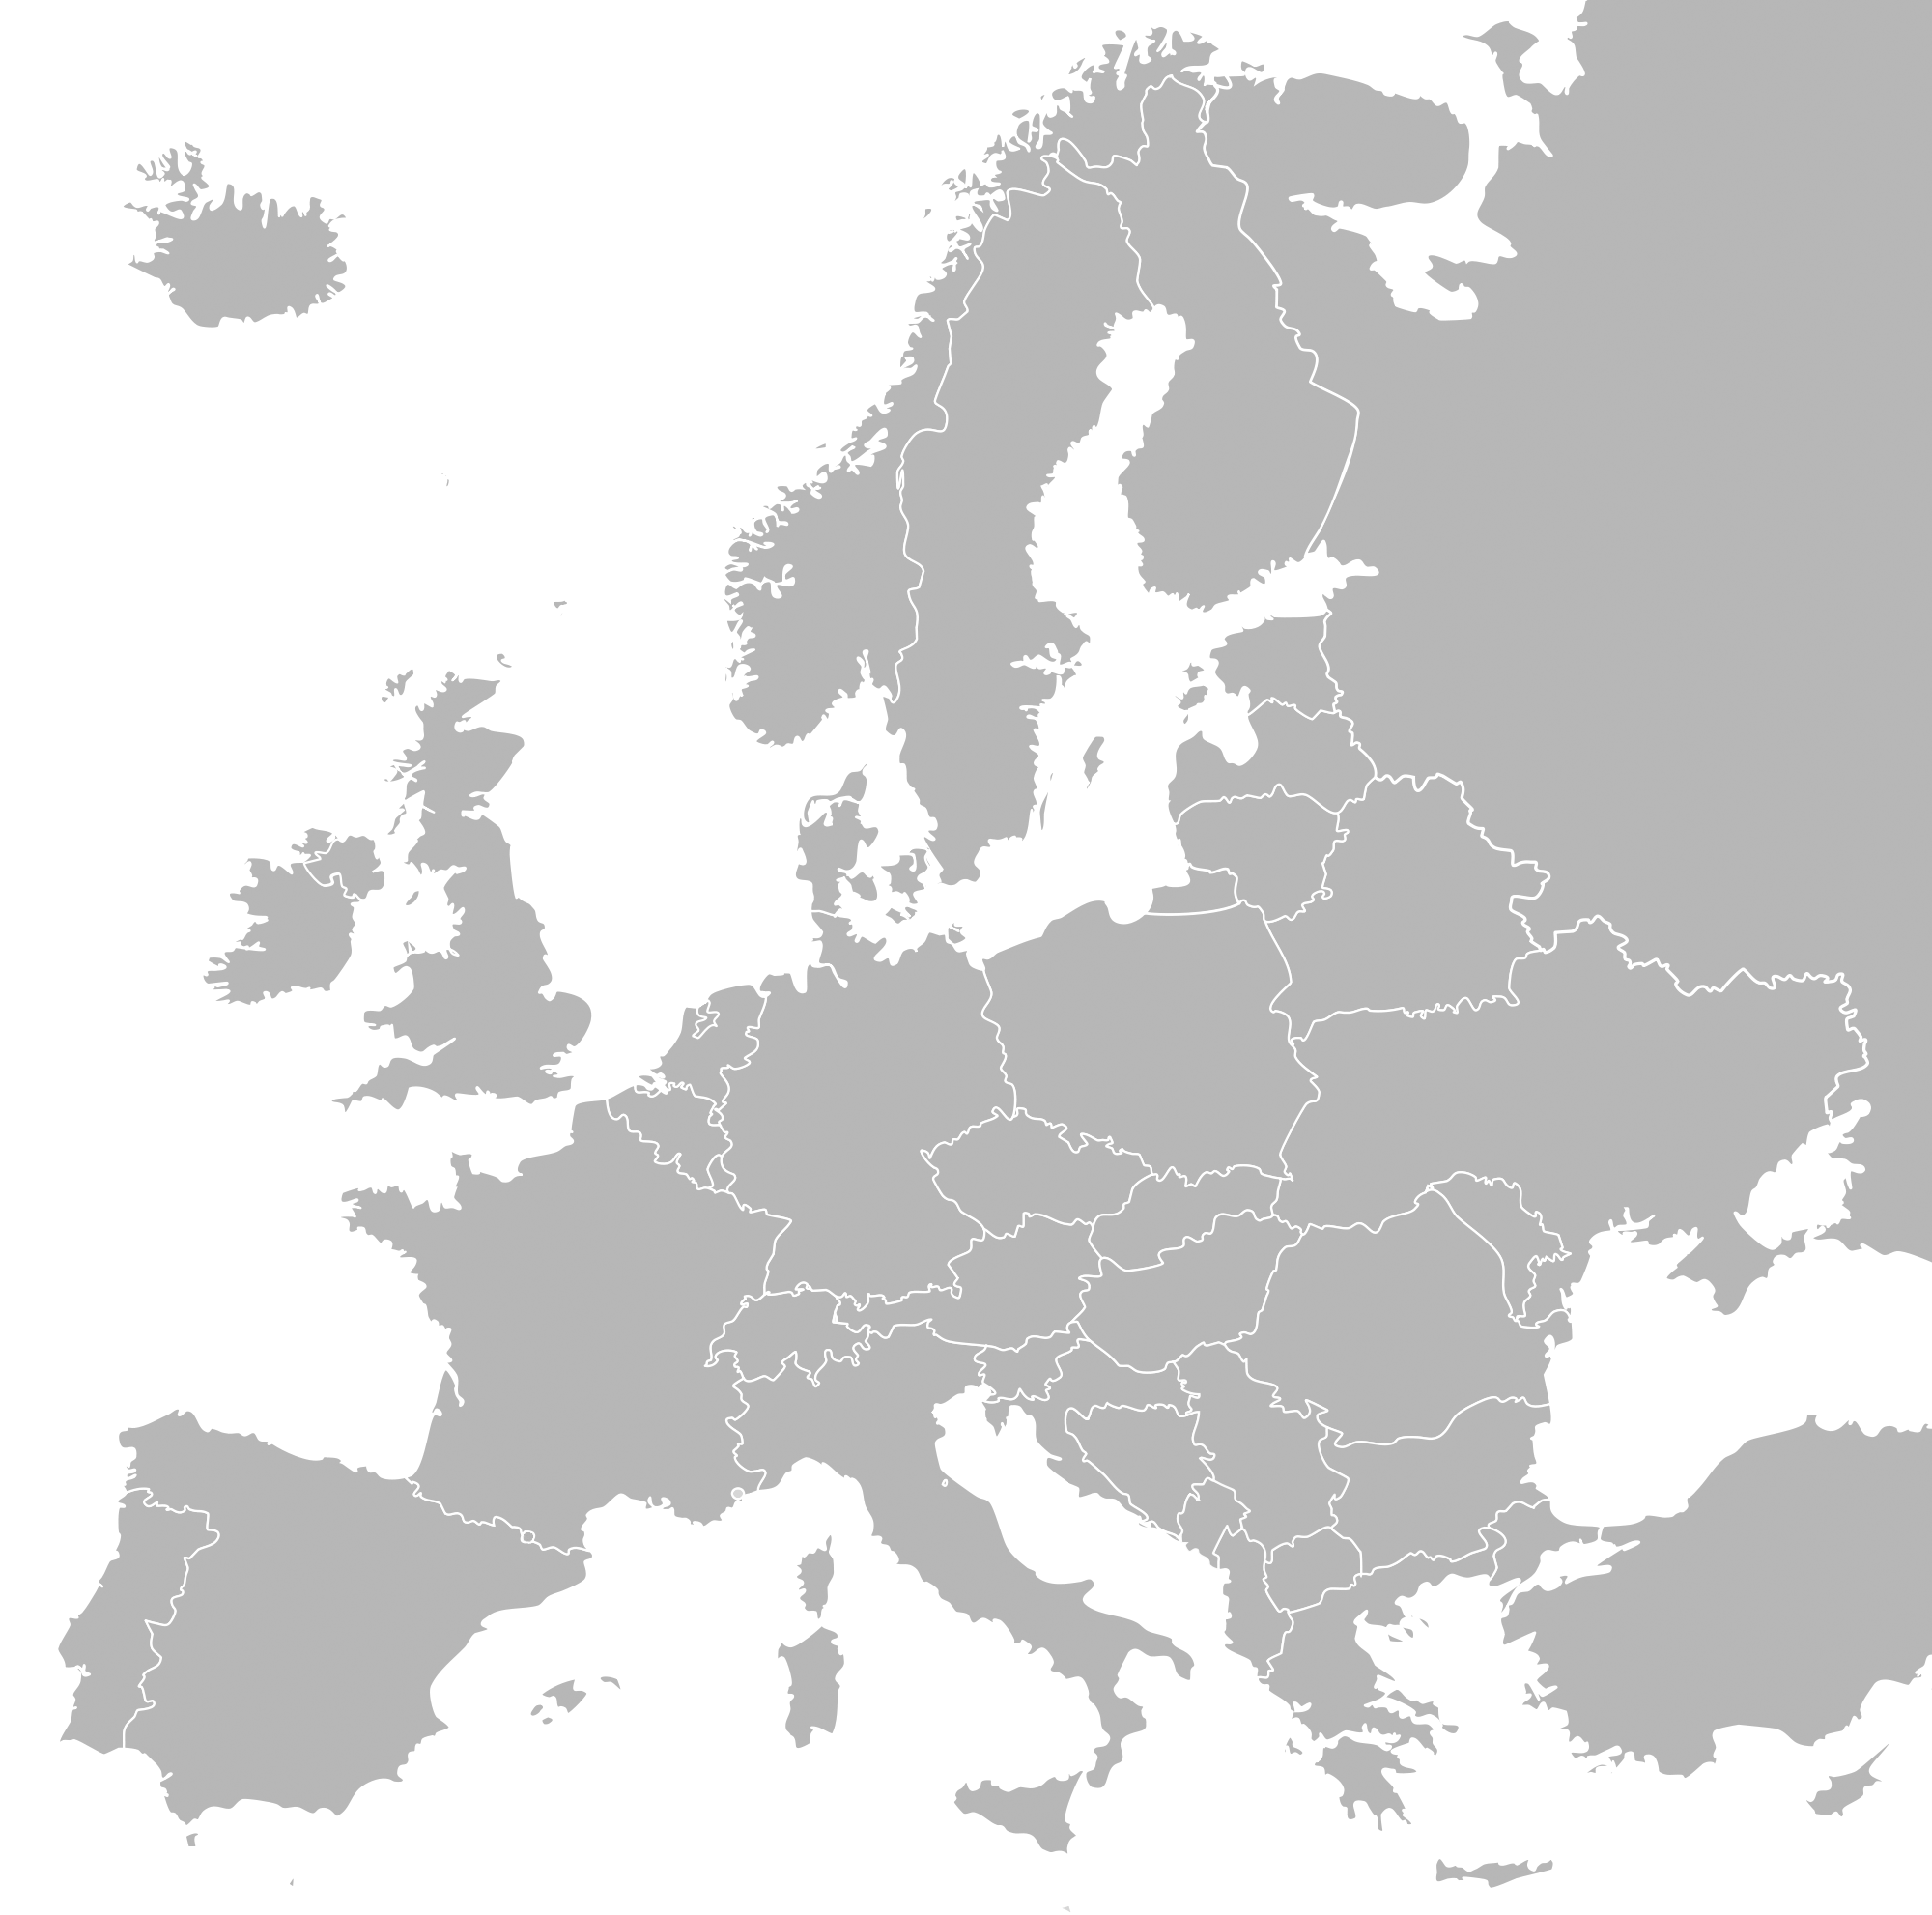 PNG Europe Map Transparent Europe Map.PNG Images. | PlusPNG